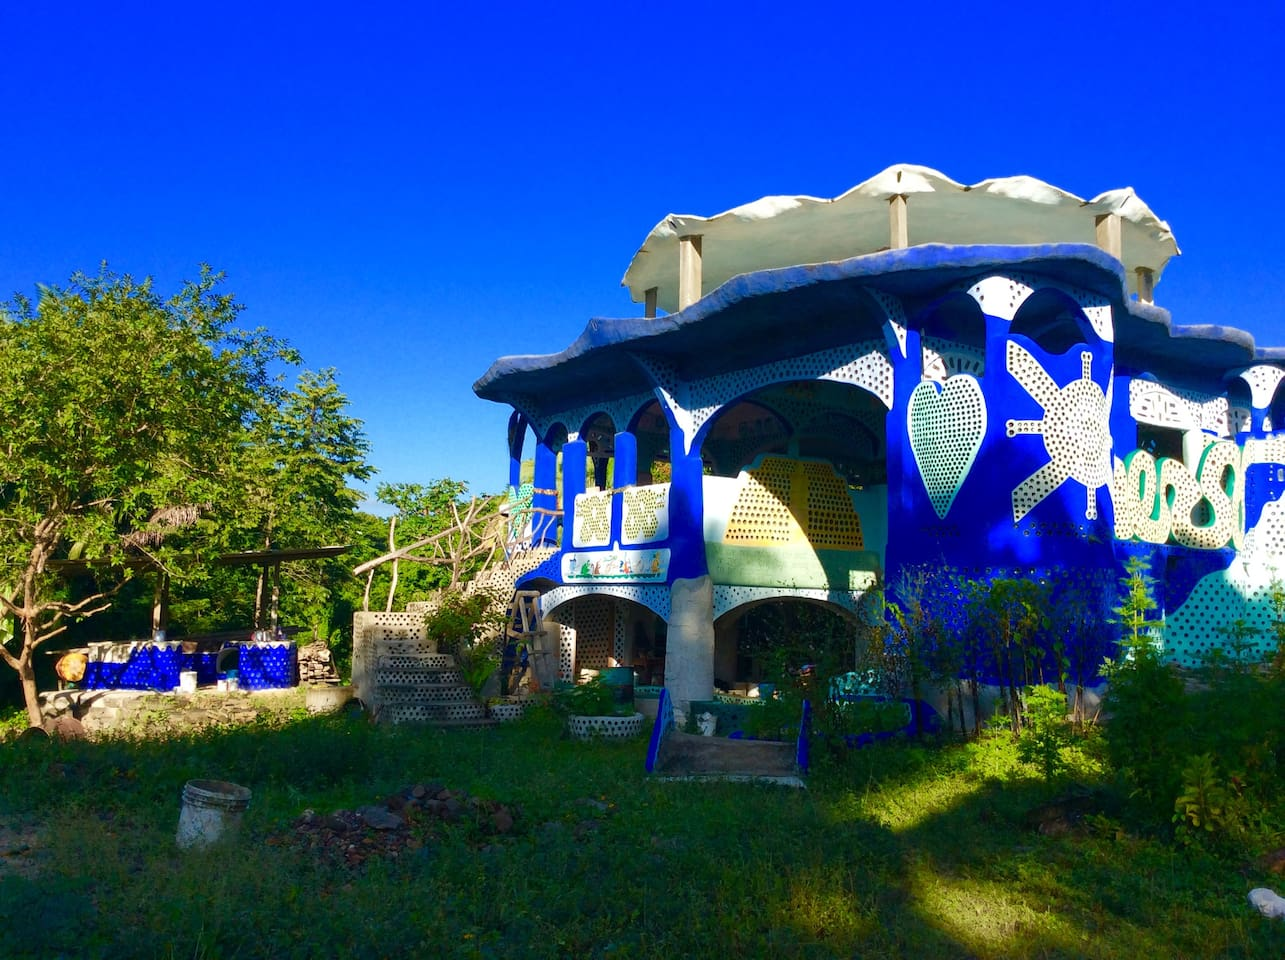 The Earthship, an ongoing labor of love